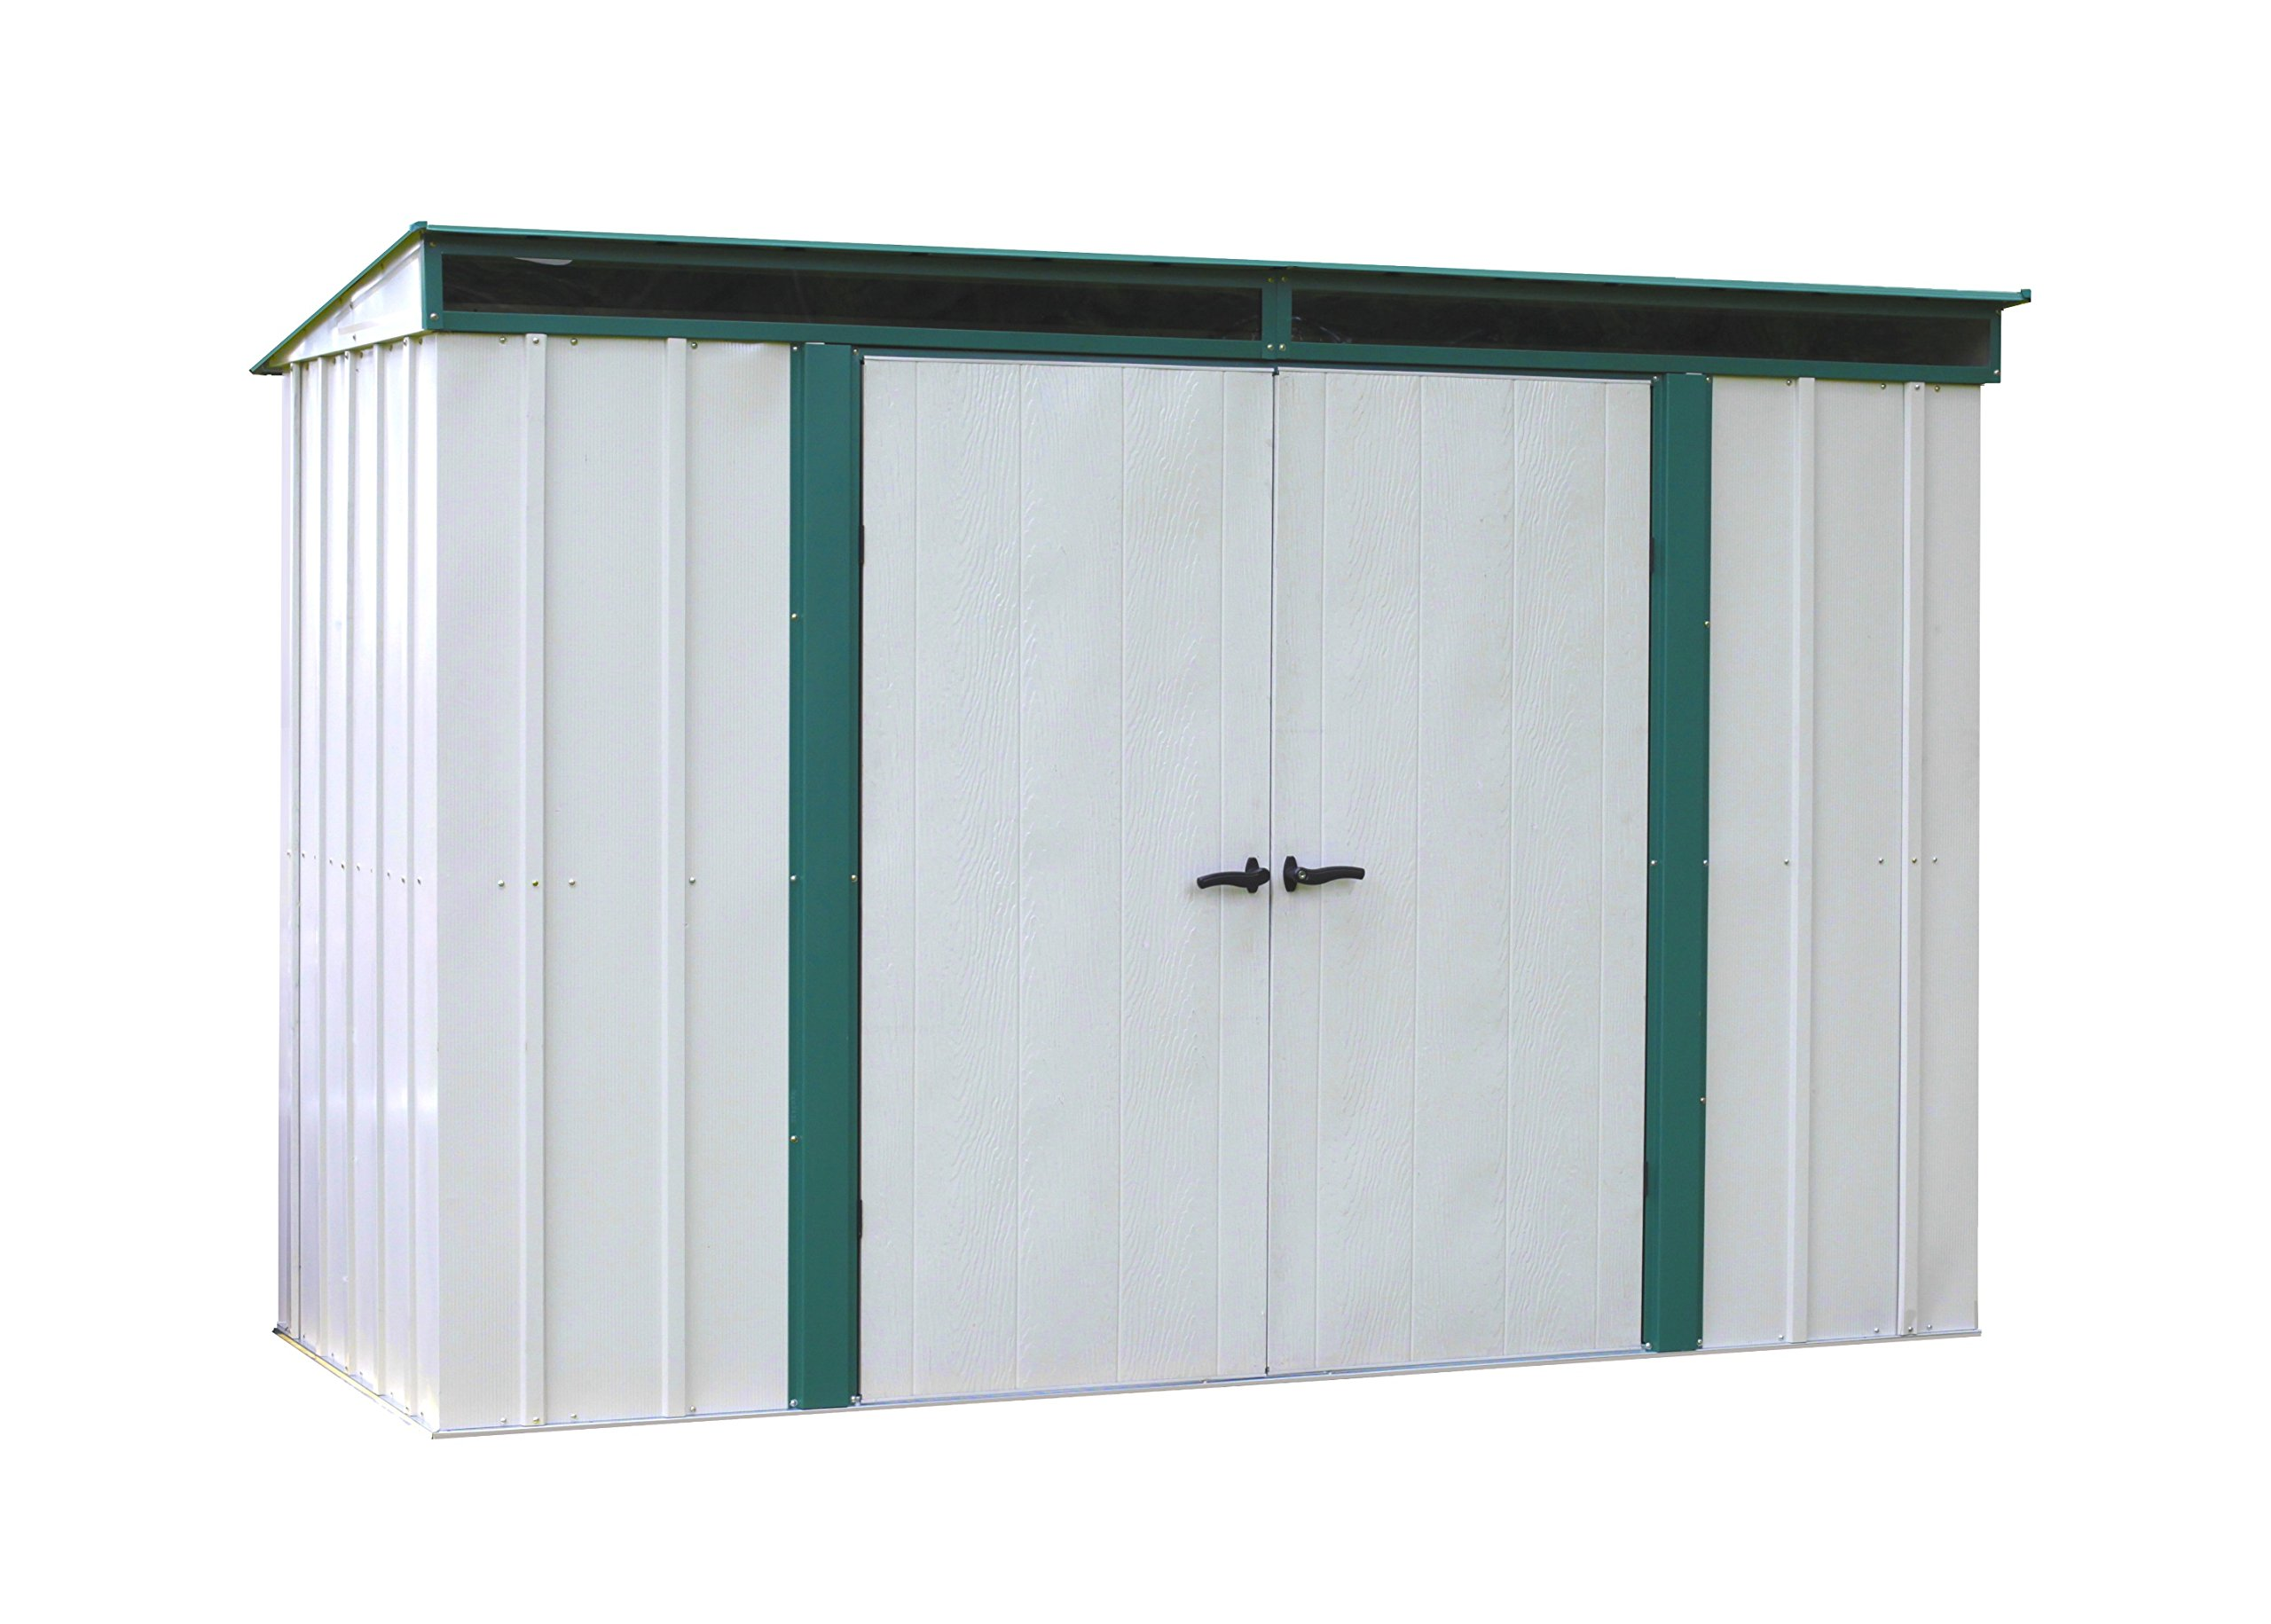 Arrow Euro-Lite Steel Storage Pent Shed, Green/Eggshell, 10 x 4 ft. by Arrow